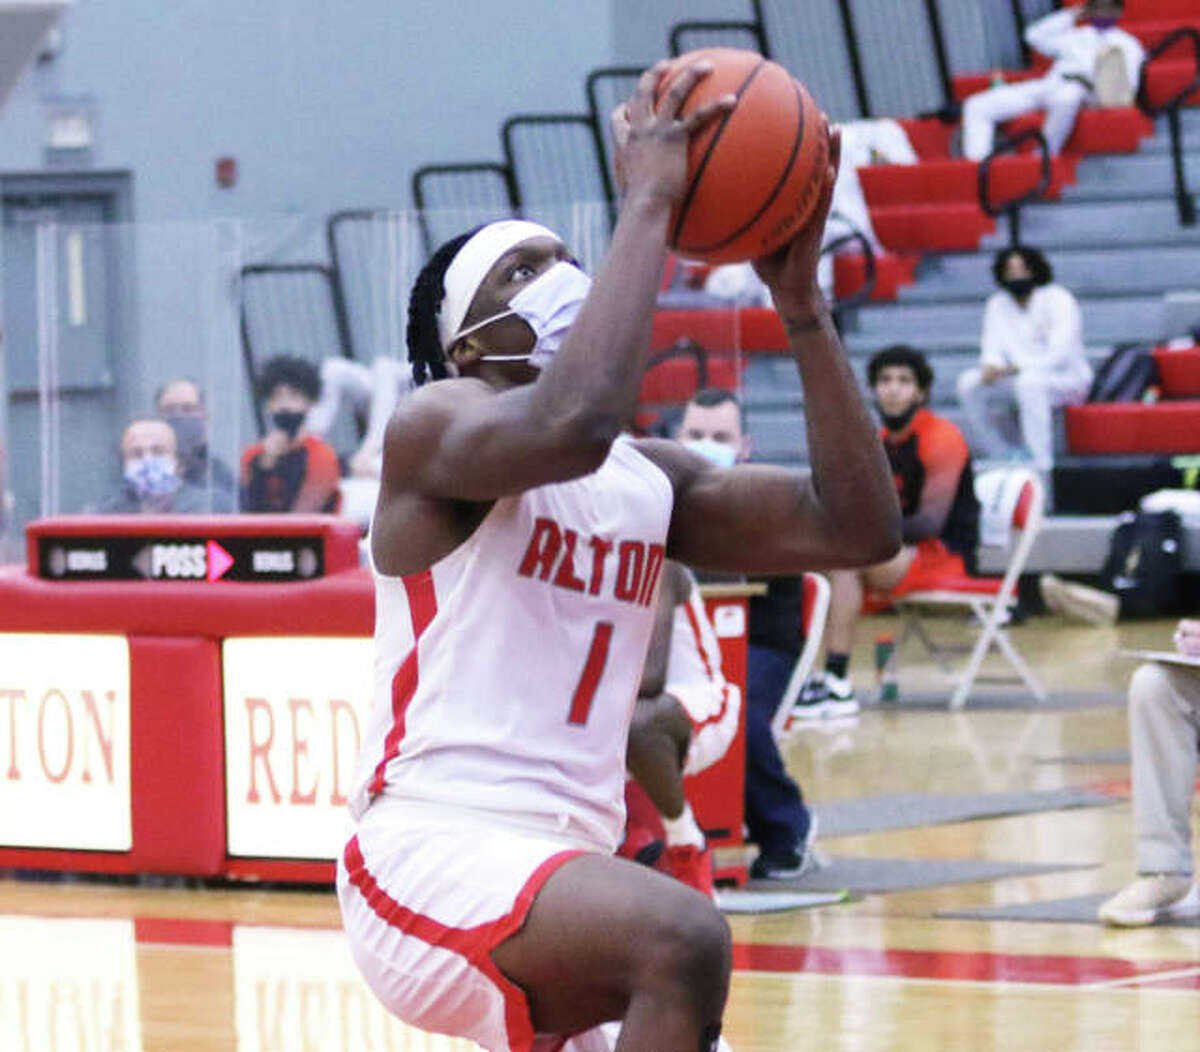 Alton's Ja'Markus Gary goes in for a layup during a Feb. 20 SWC game against Edwardsville at Alton High in Godfrey. On Wednesday night in Belleville, Gary scored a career-high 32 points in a SWC loss to Belleville West.